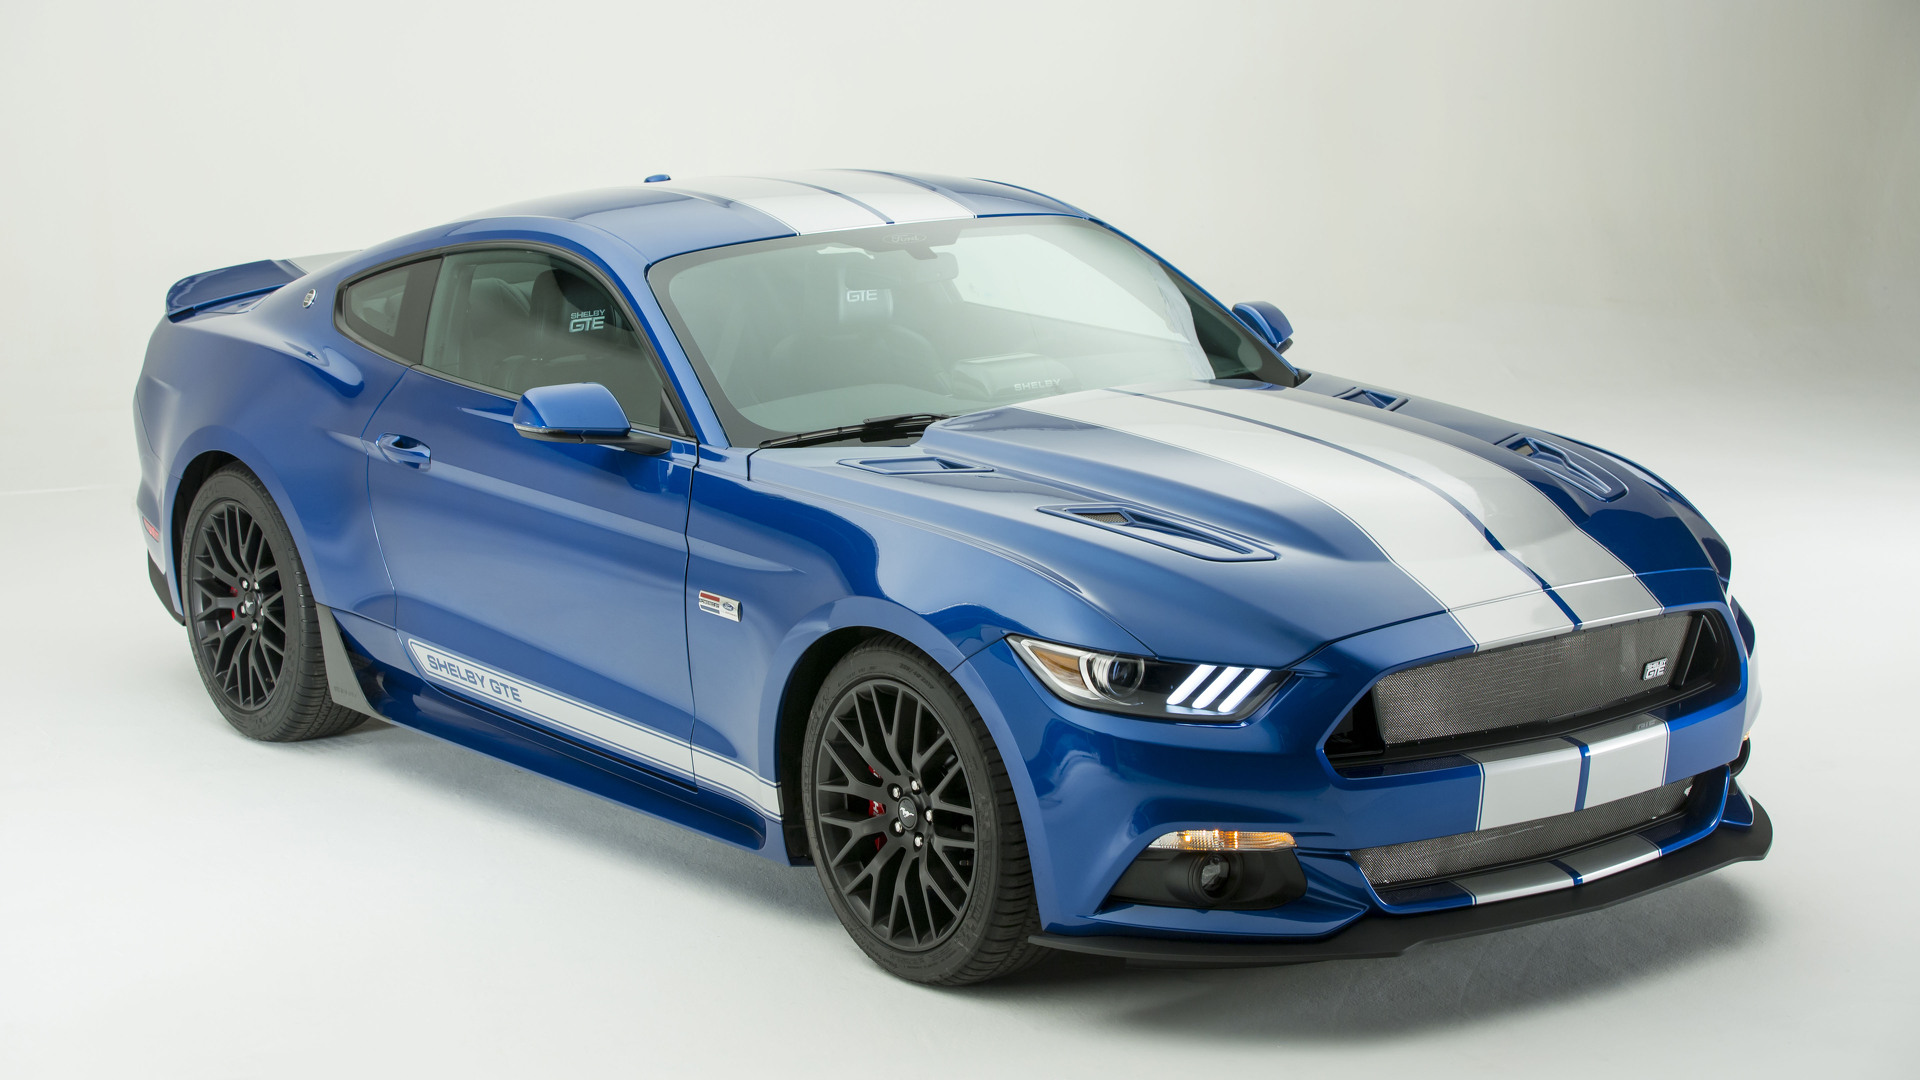 Back to Story: Ford Mustang Shelby GTE – if the GT350 is too much